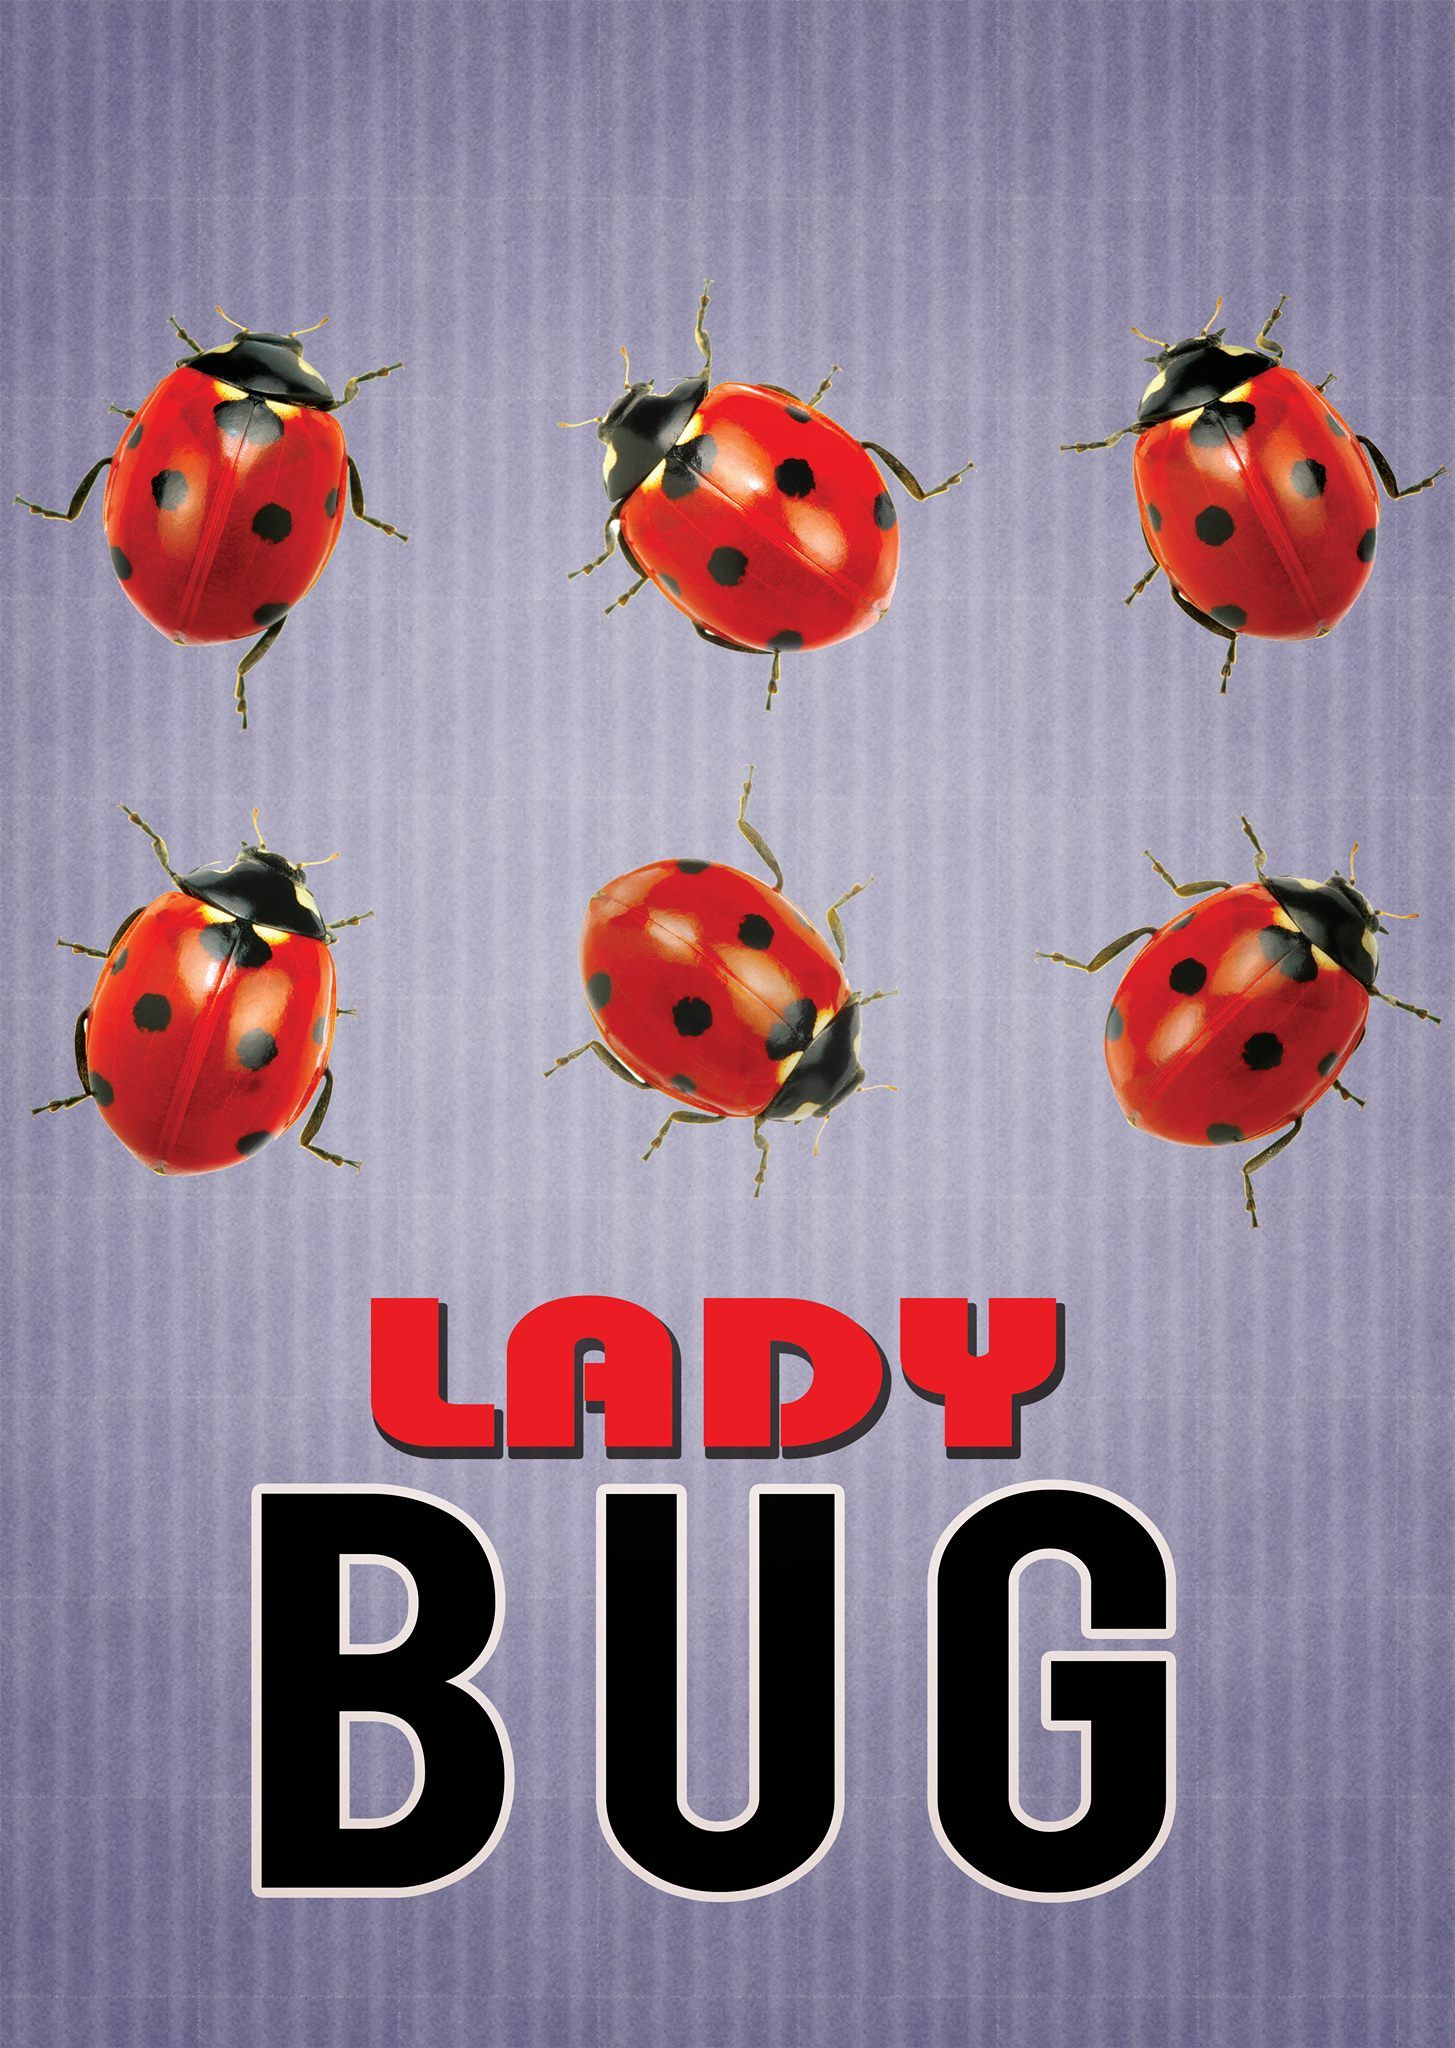 Ladybug The Movie Movie posters, Concept art, Movies